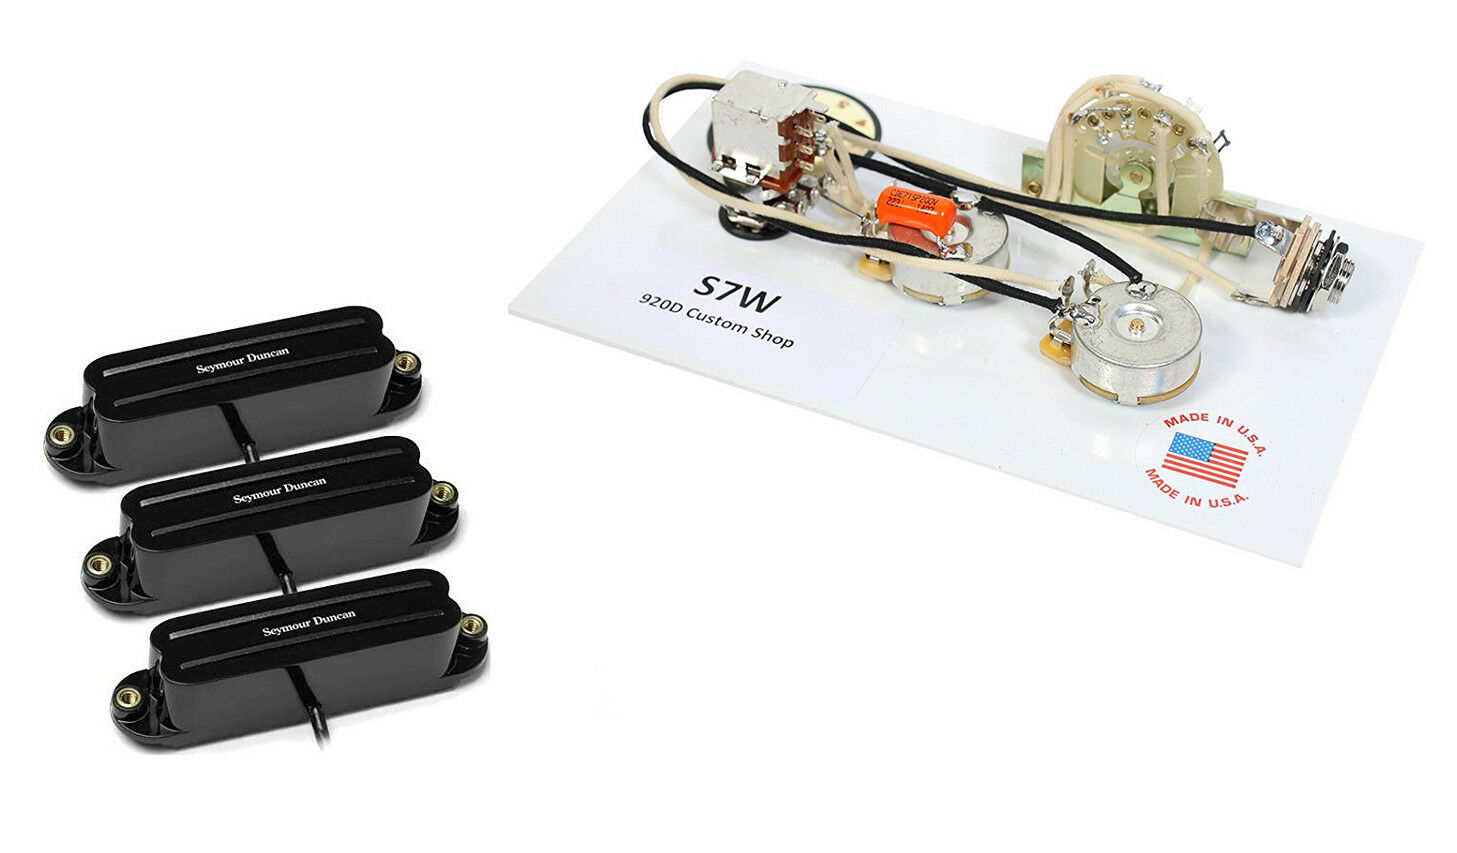 Duncan Cool Vintage Hot Rails Guitar Pickup Set Black 7 Way Wiring Harness 1 Of 3only 0 Available